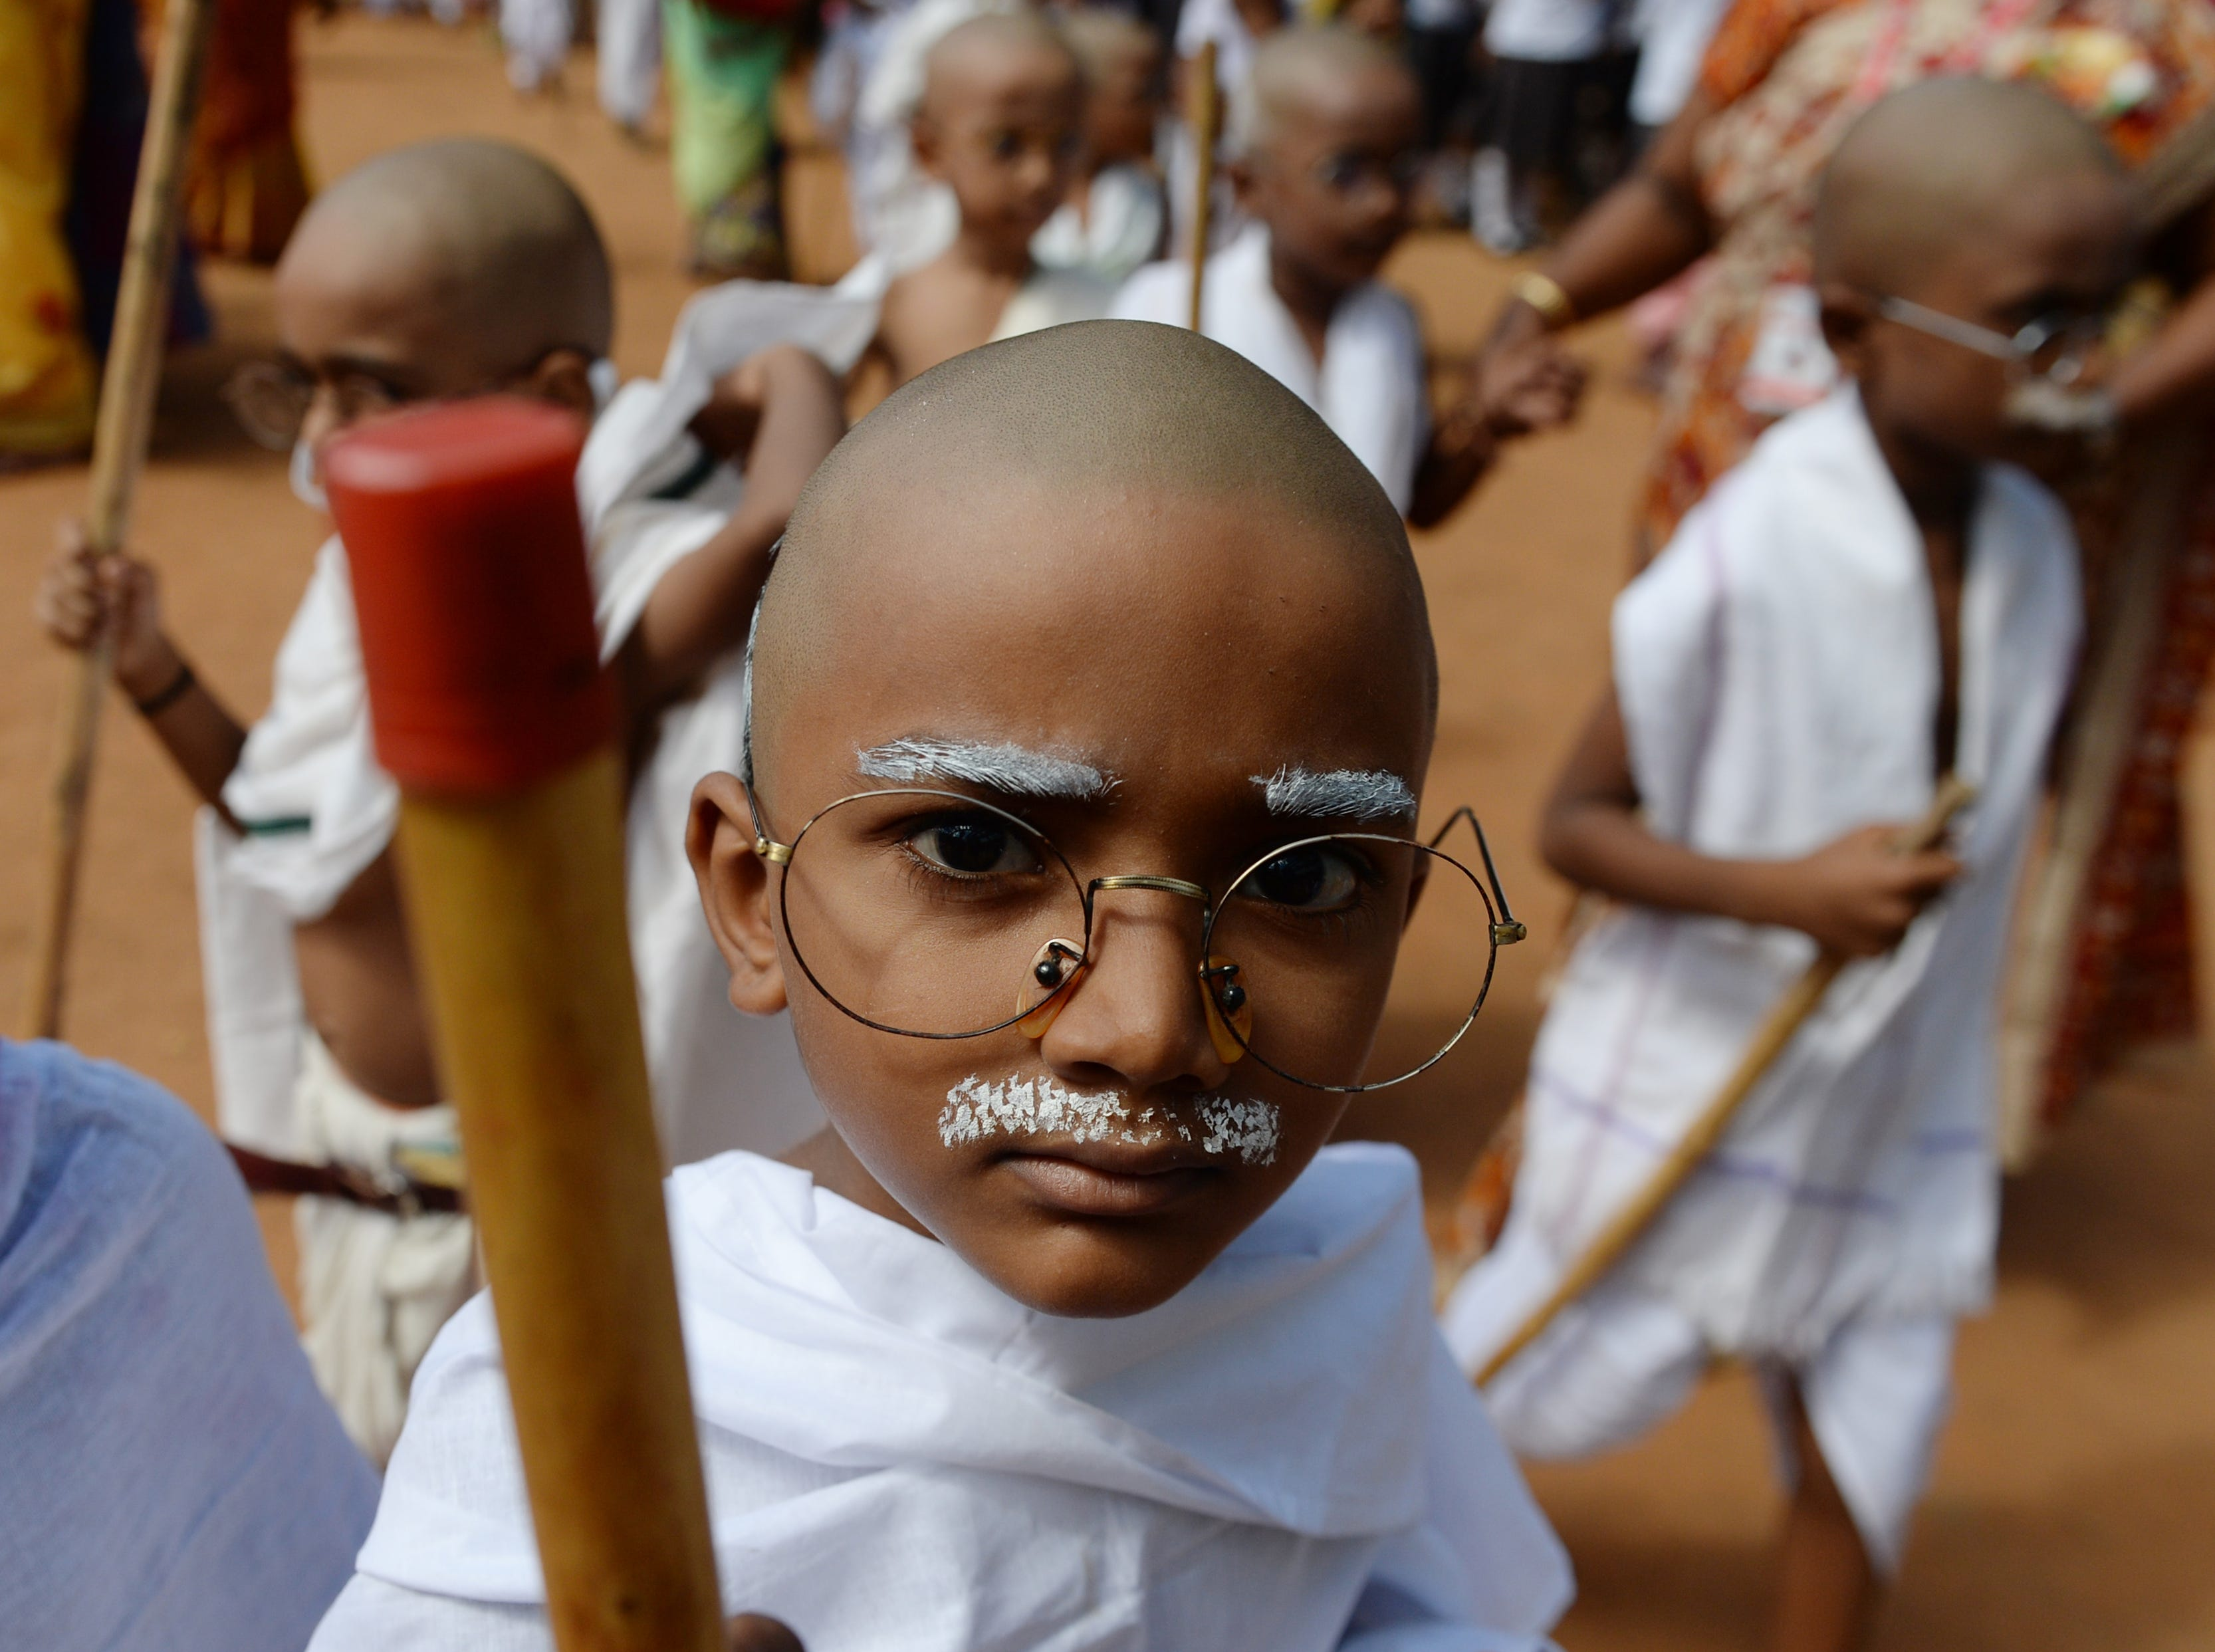 Indian children with their heads shaved and dressed like Mahatma Gandhi assemble during a school event in Chennai on Oct. 1, 2018, the day before Gandhi's birth anniversary.